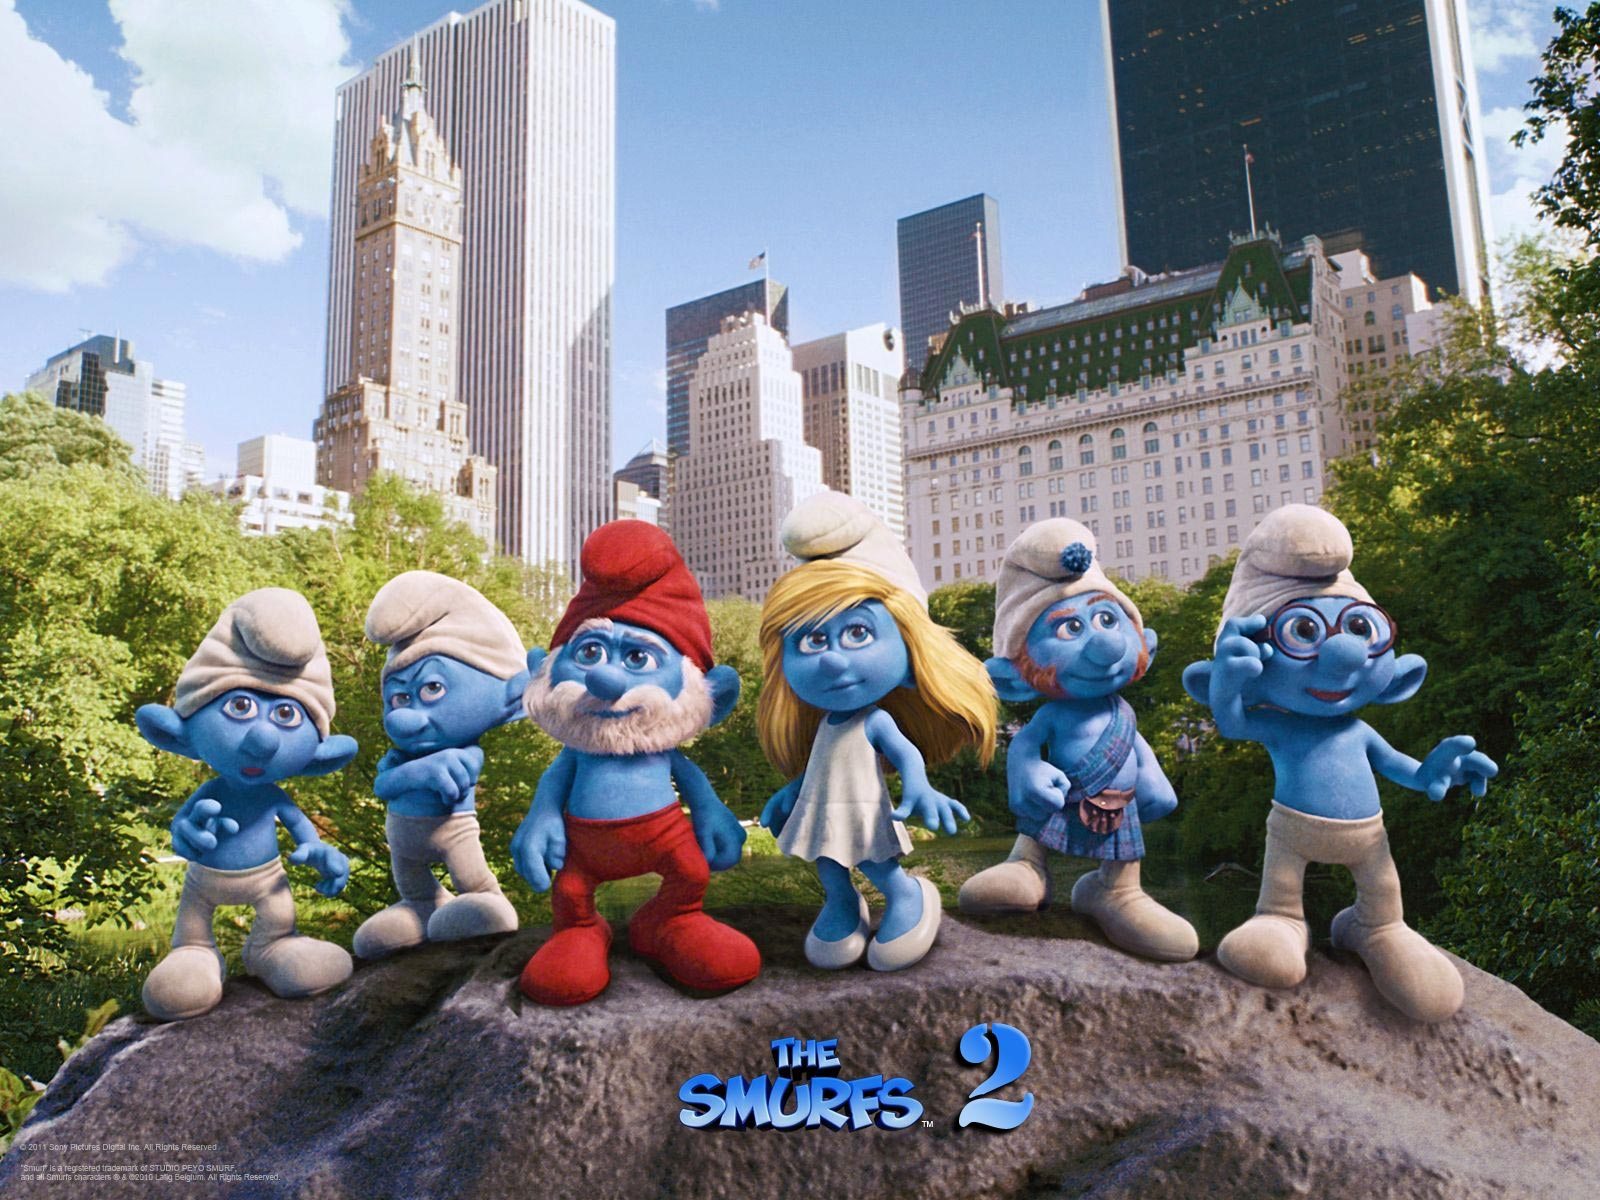 Production Begins On THE SMURFS 2, Plot Details Revealed